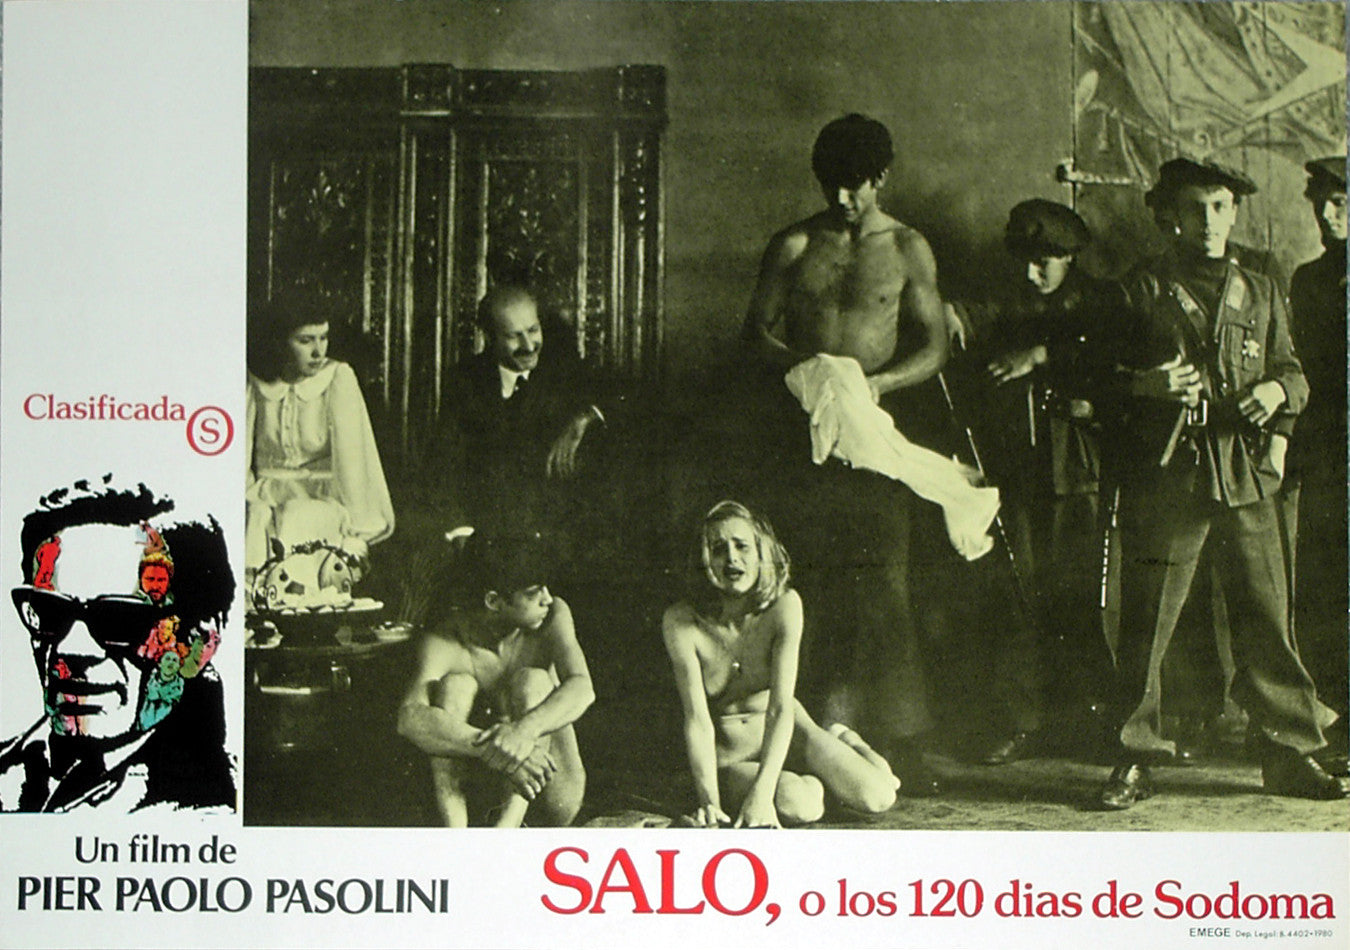 SALO: 120 DAYS OF SODOM - Spanish lobby card v10